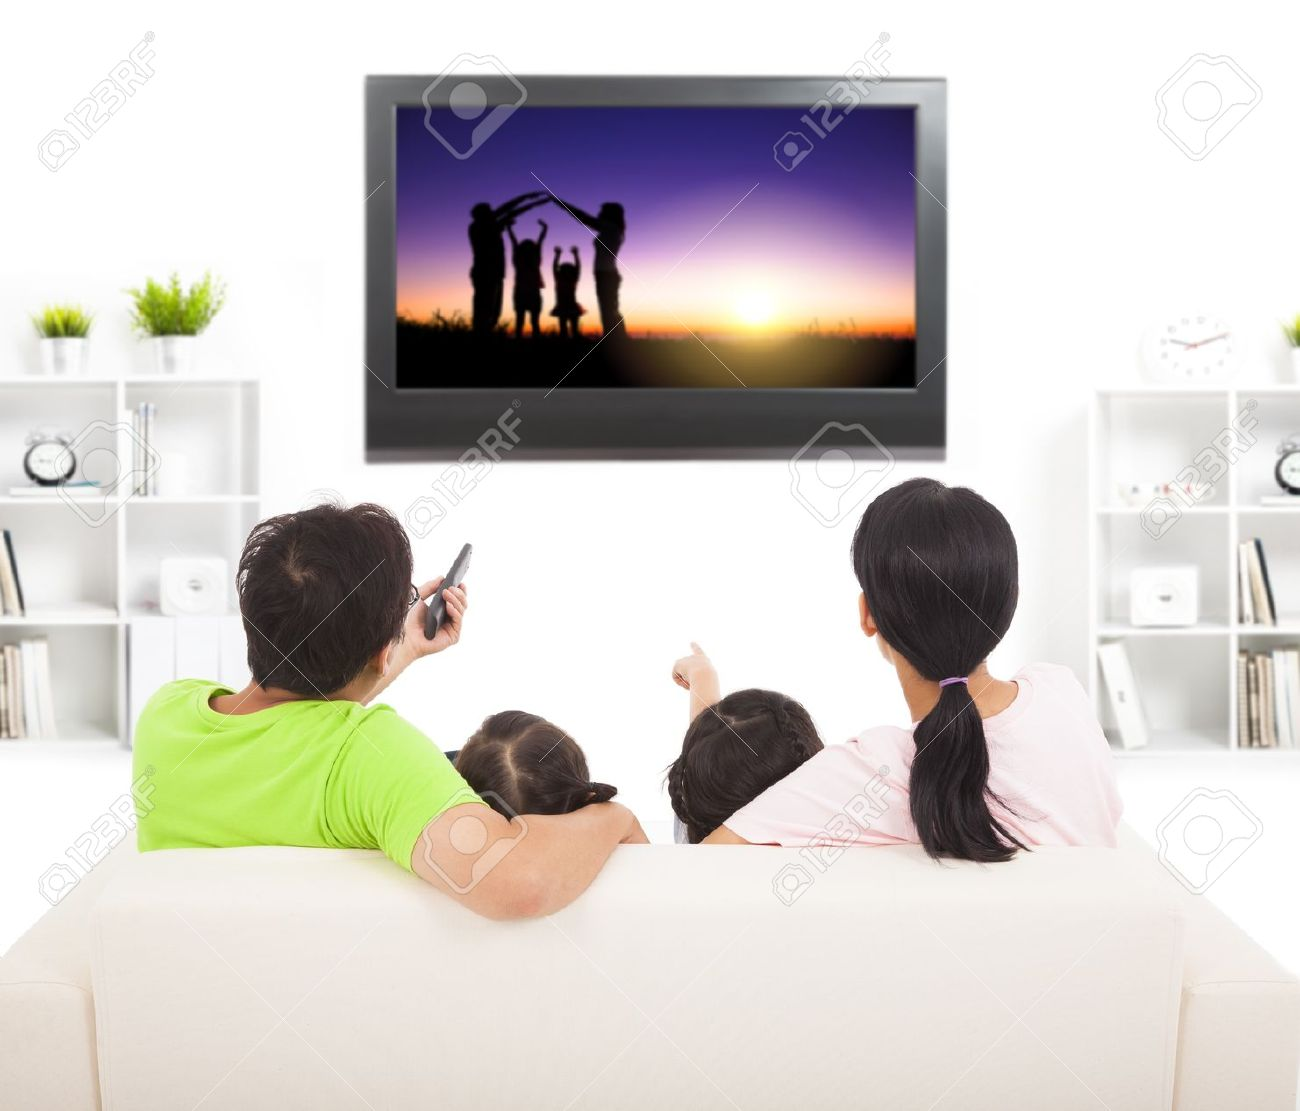 Living Room With Tv And People living room tv stock photos. royalty free living room tv images